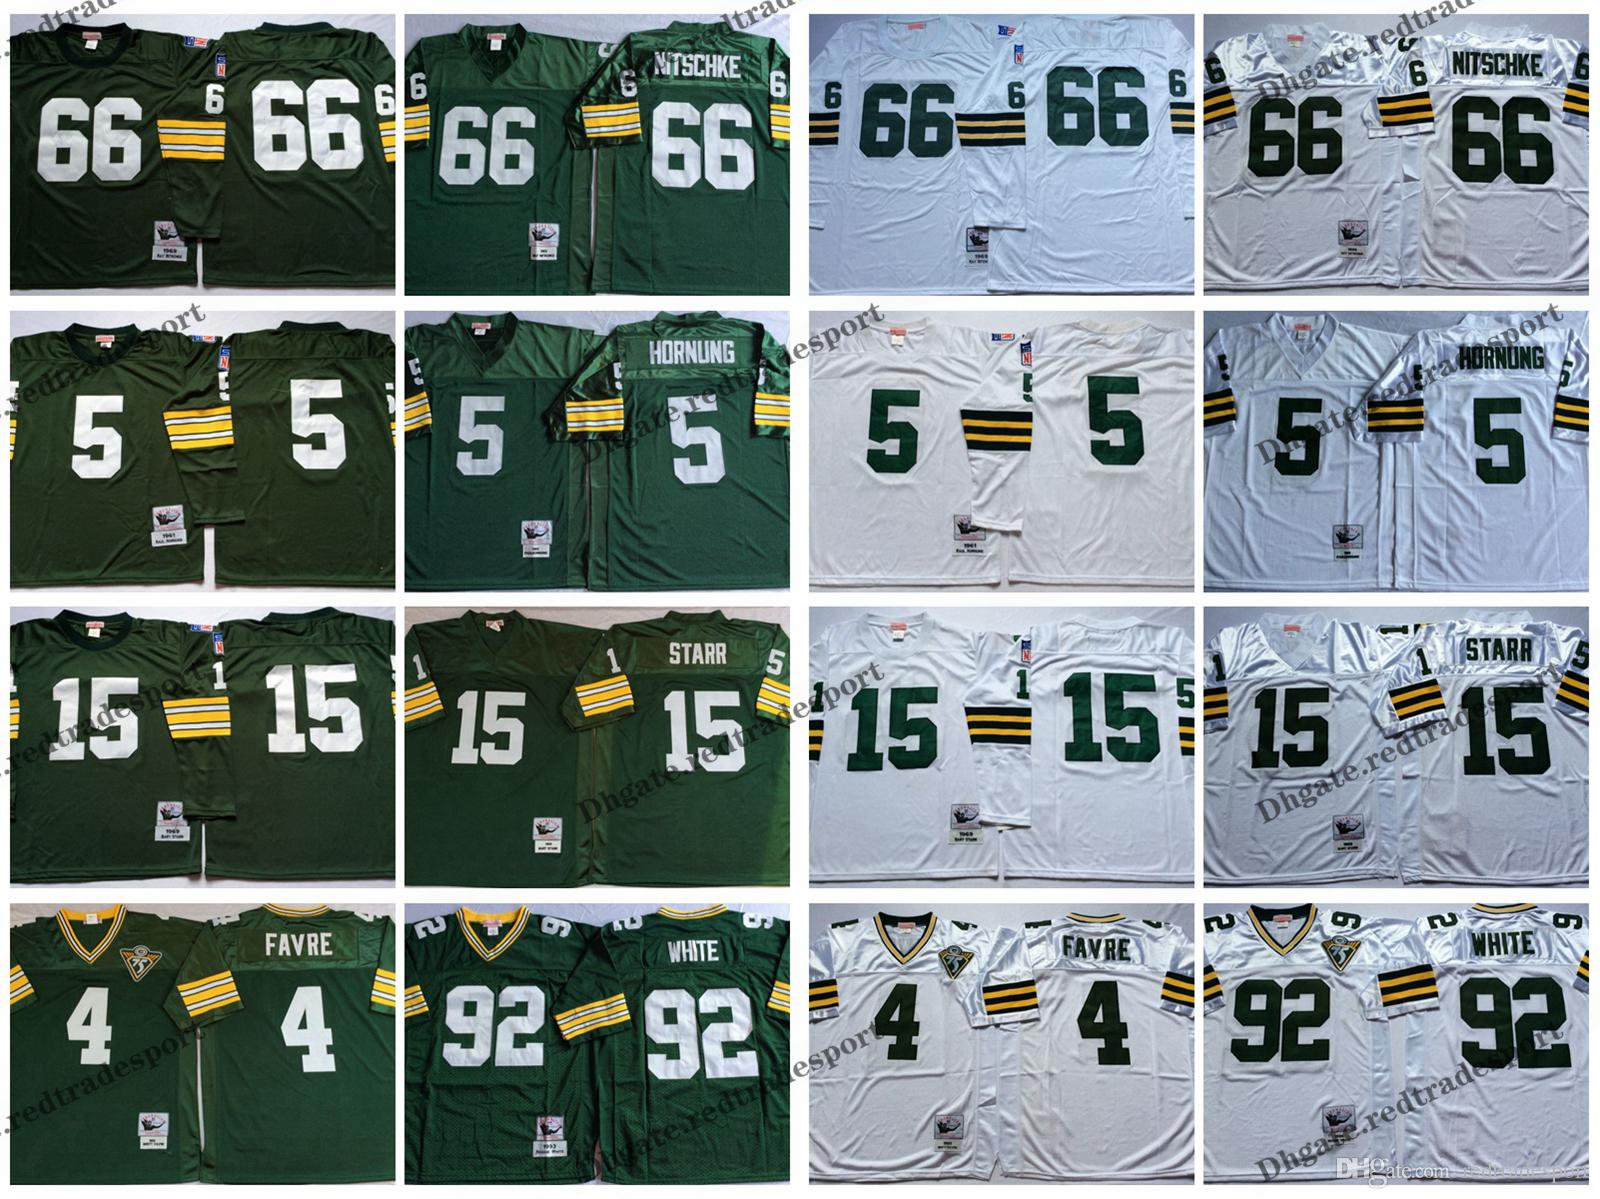 low priced 31ebd d6acb Vintage Green Bay Favre Packers 4 Brett Favre 15 Bart Starr 66 Ray Nitschke  92 Reggie White Football Jerseys Cheap Stitched Shirts M-XXXL